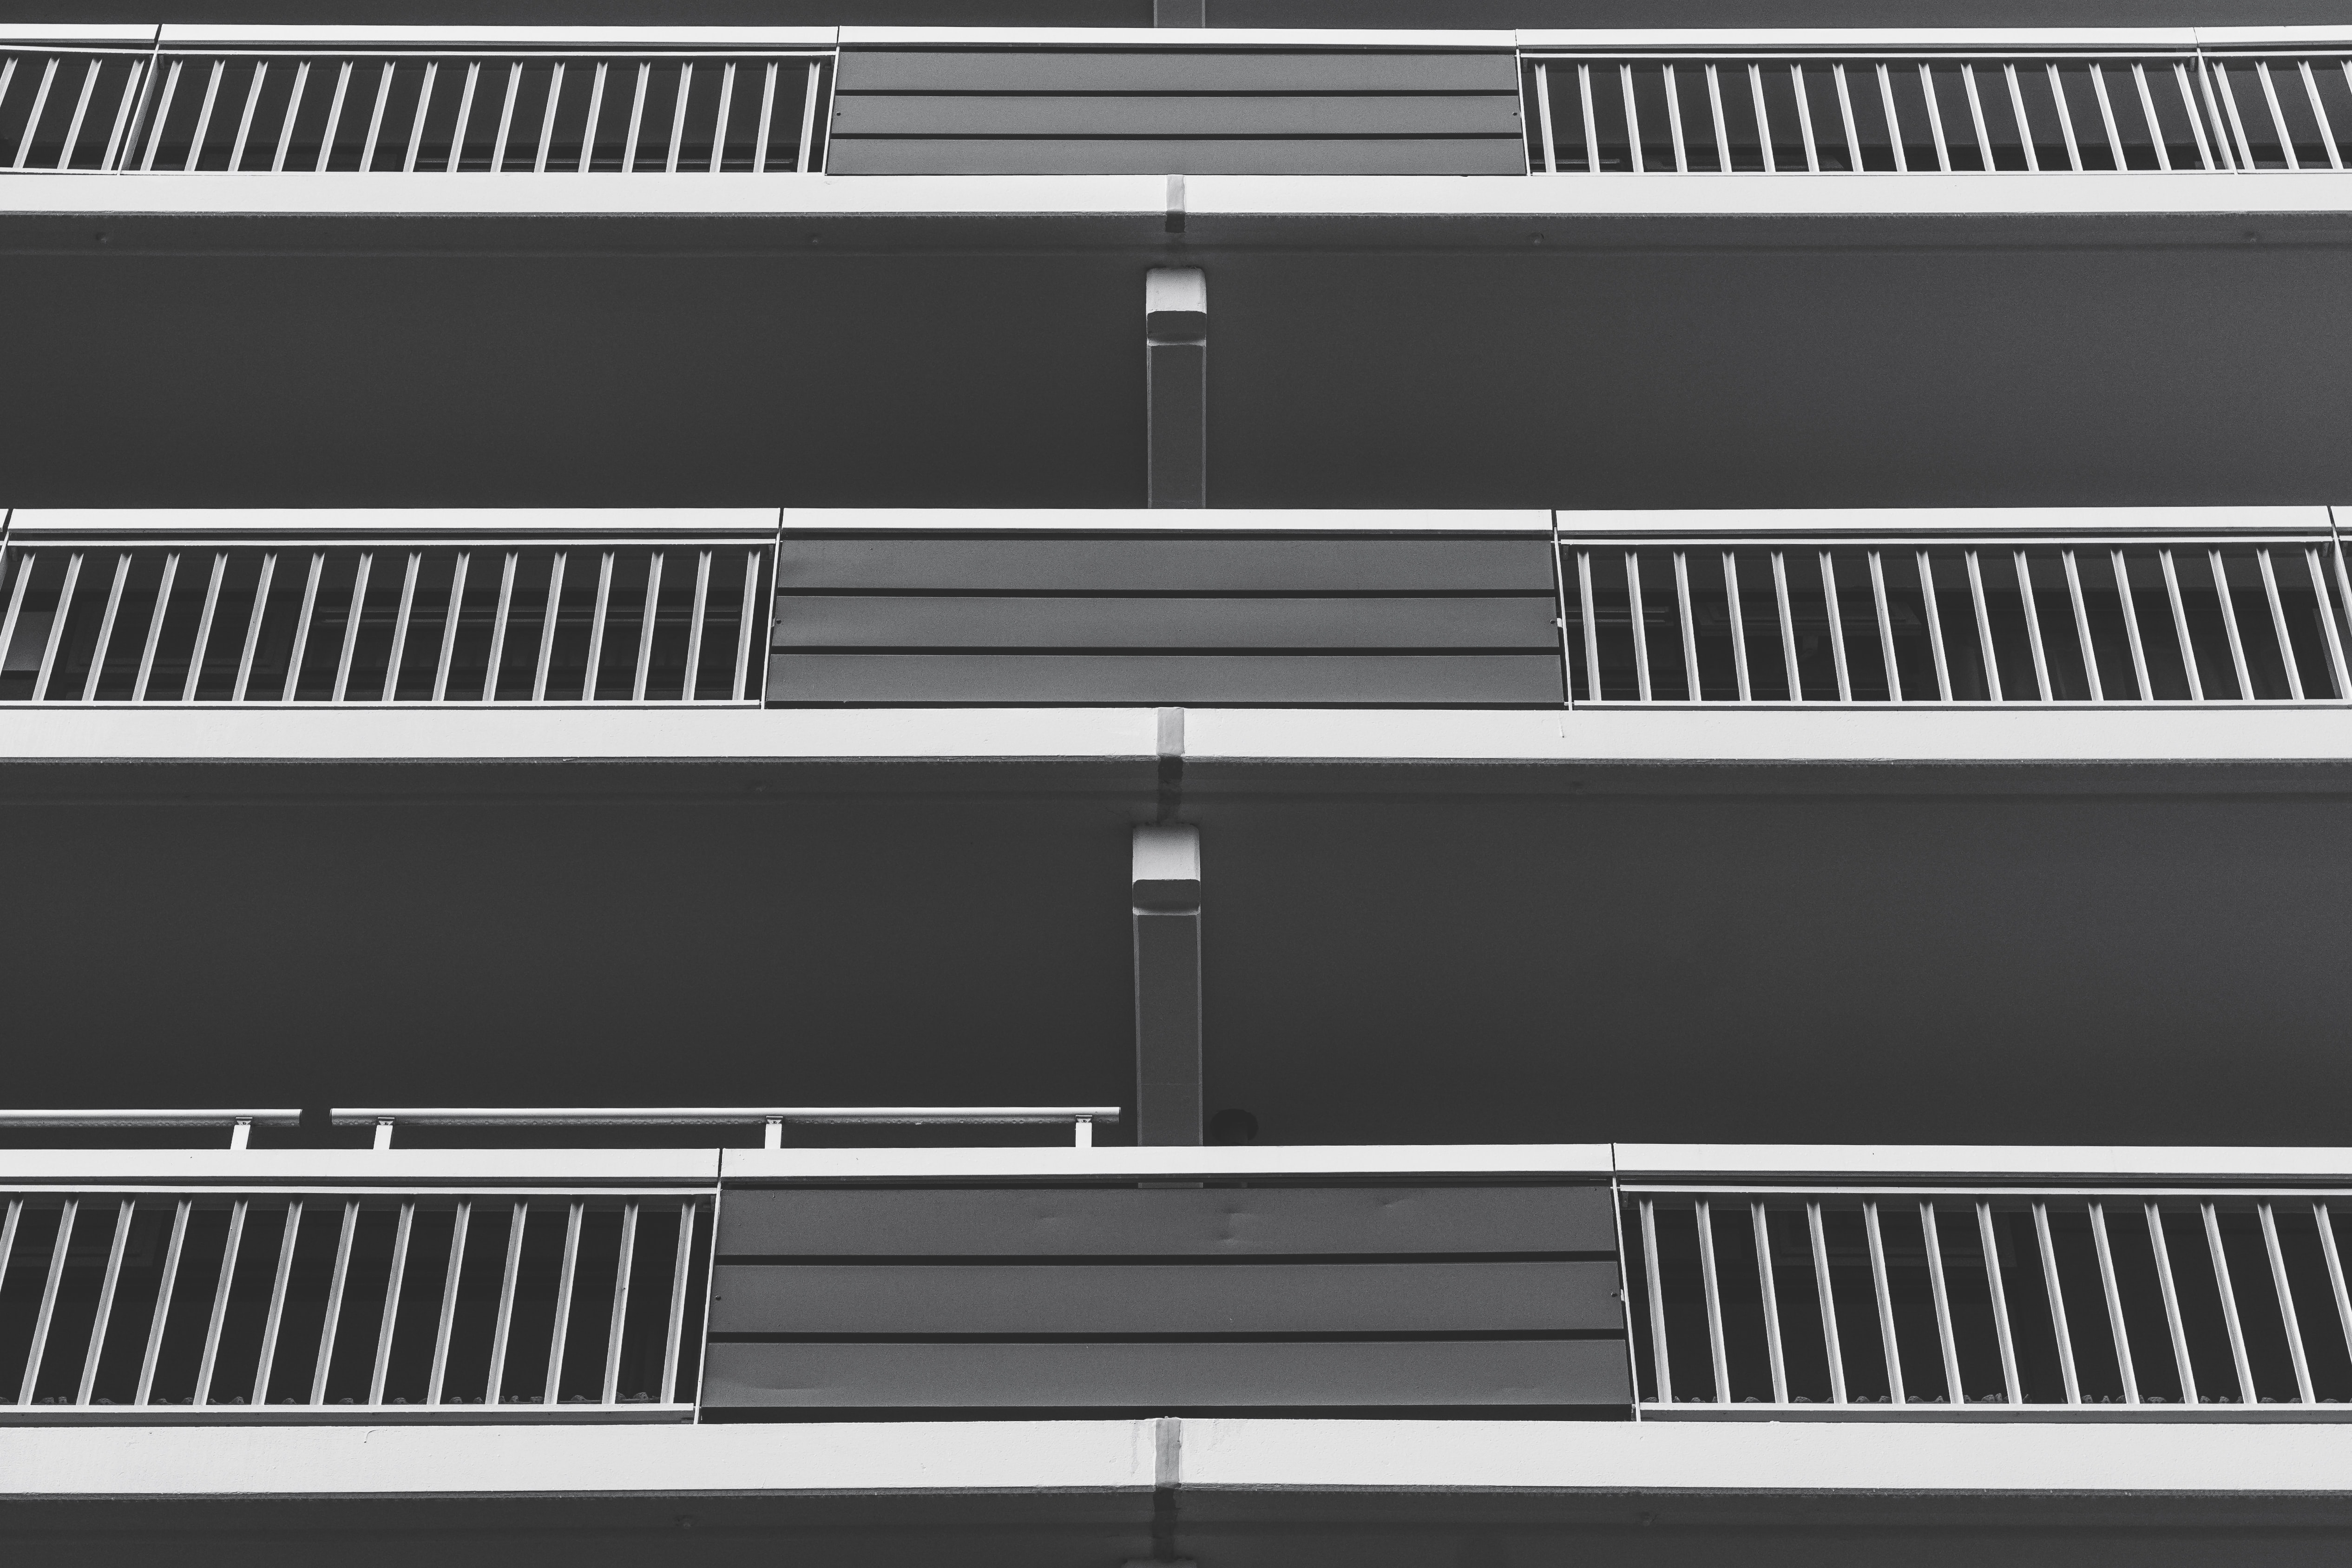 Black and white shot of apartment building balconies from below